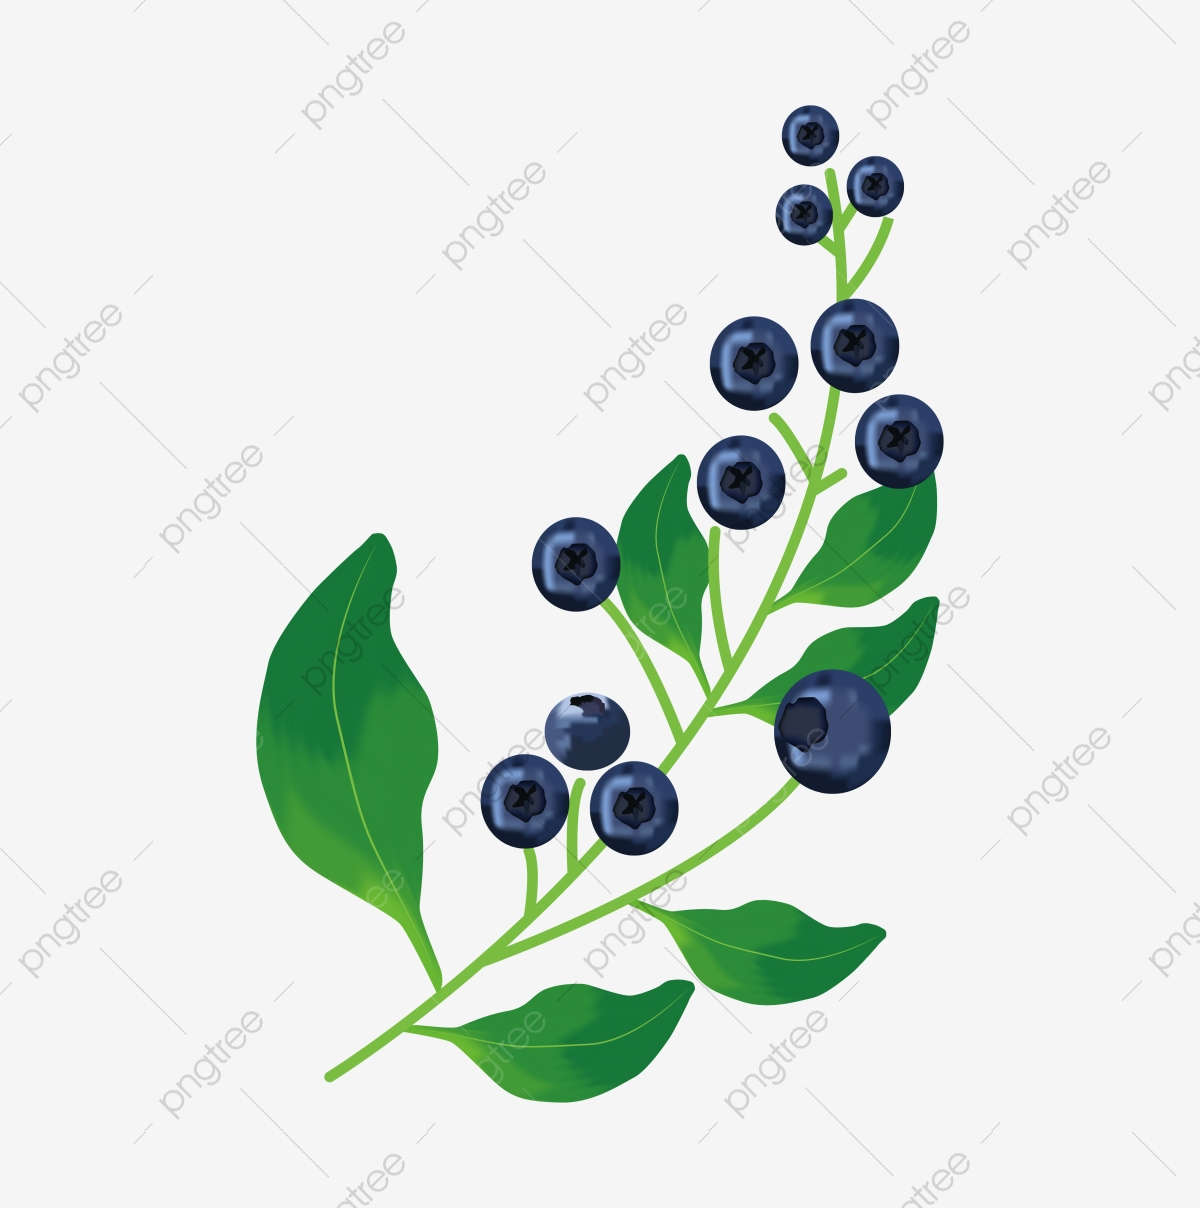 A Blueberry Branch Blue Twig Blueberry Png And Vector With Transparent Background For Free Download